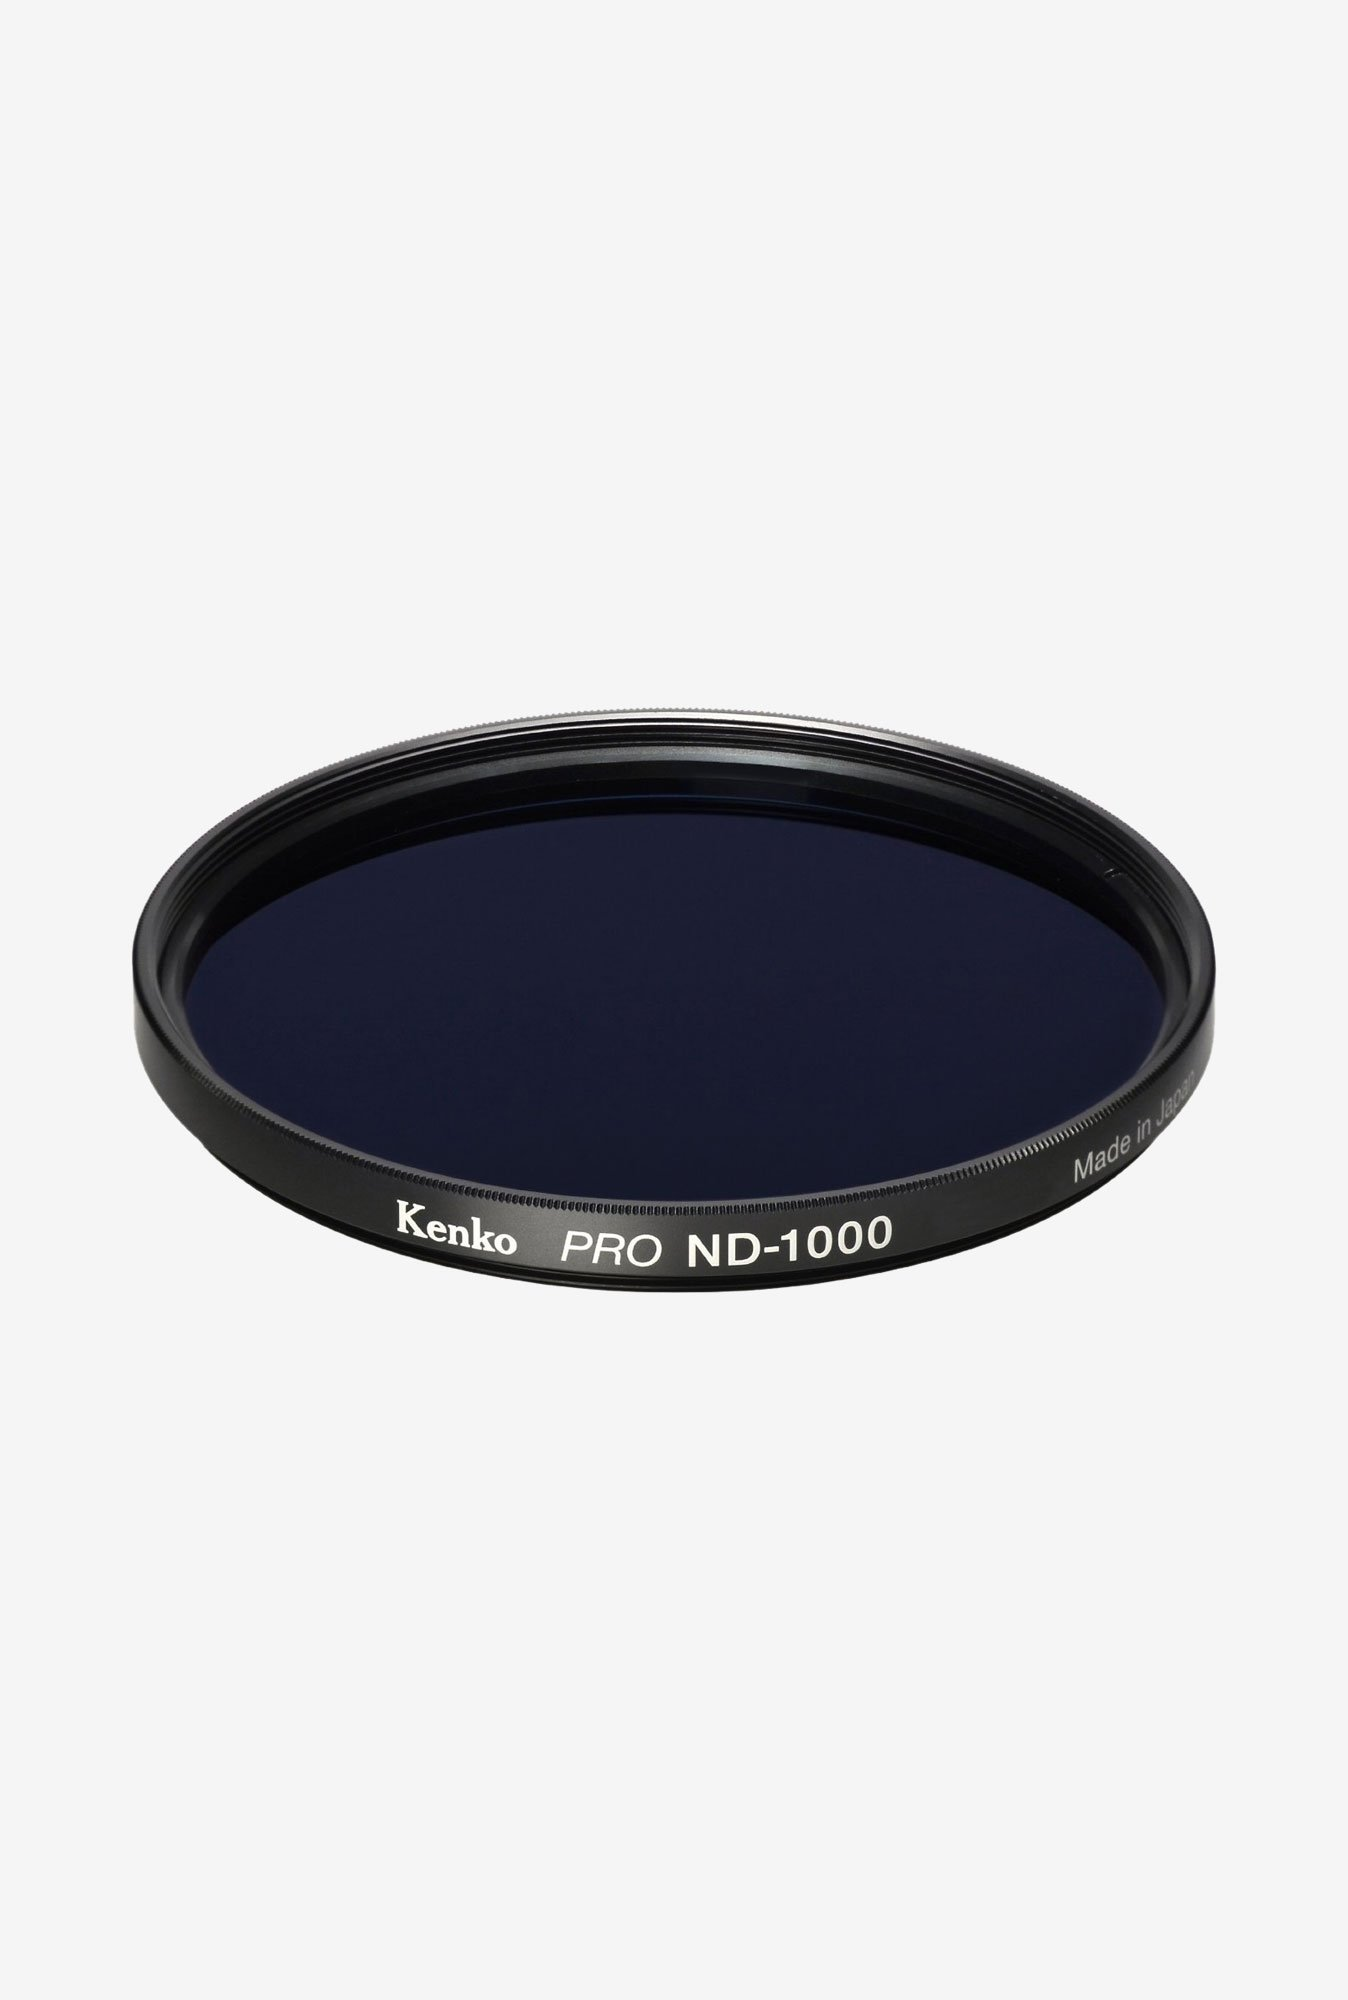 Kenko 58mm Pro ND1000 Multicoated Camera Lens Filter (Black)